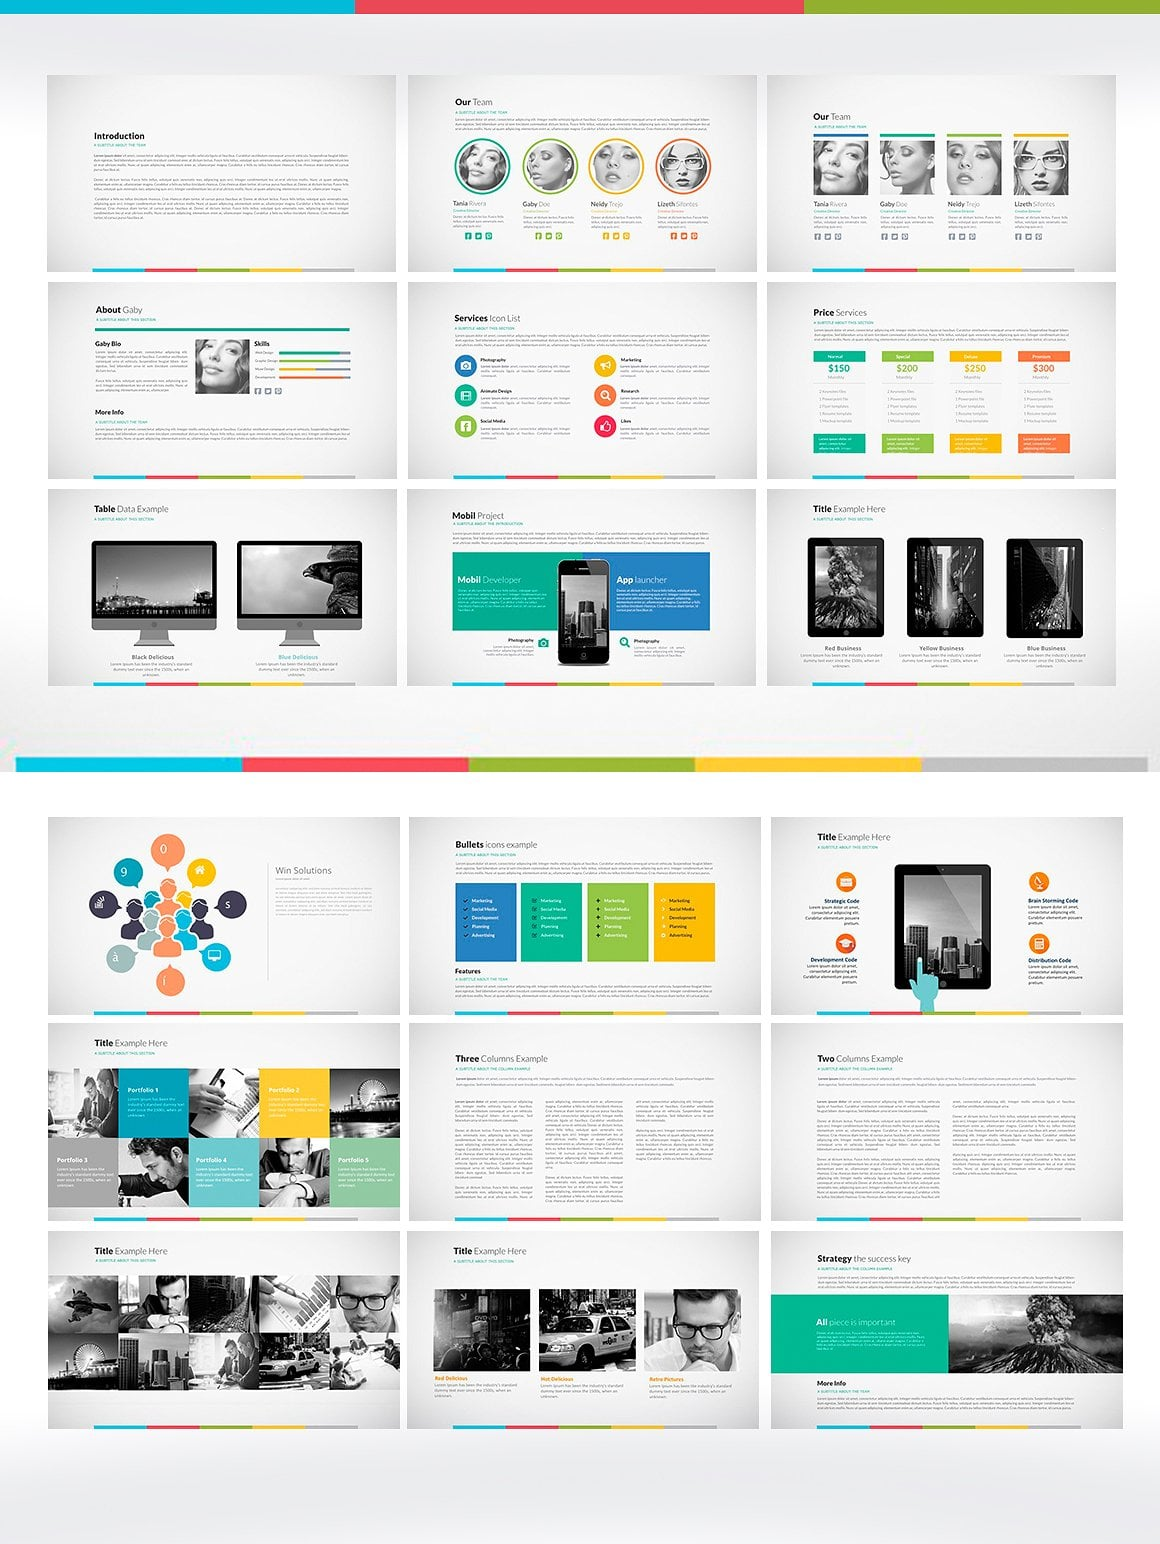 20 Powerpoint Templates with 81% OFF - Big Pitch 02